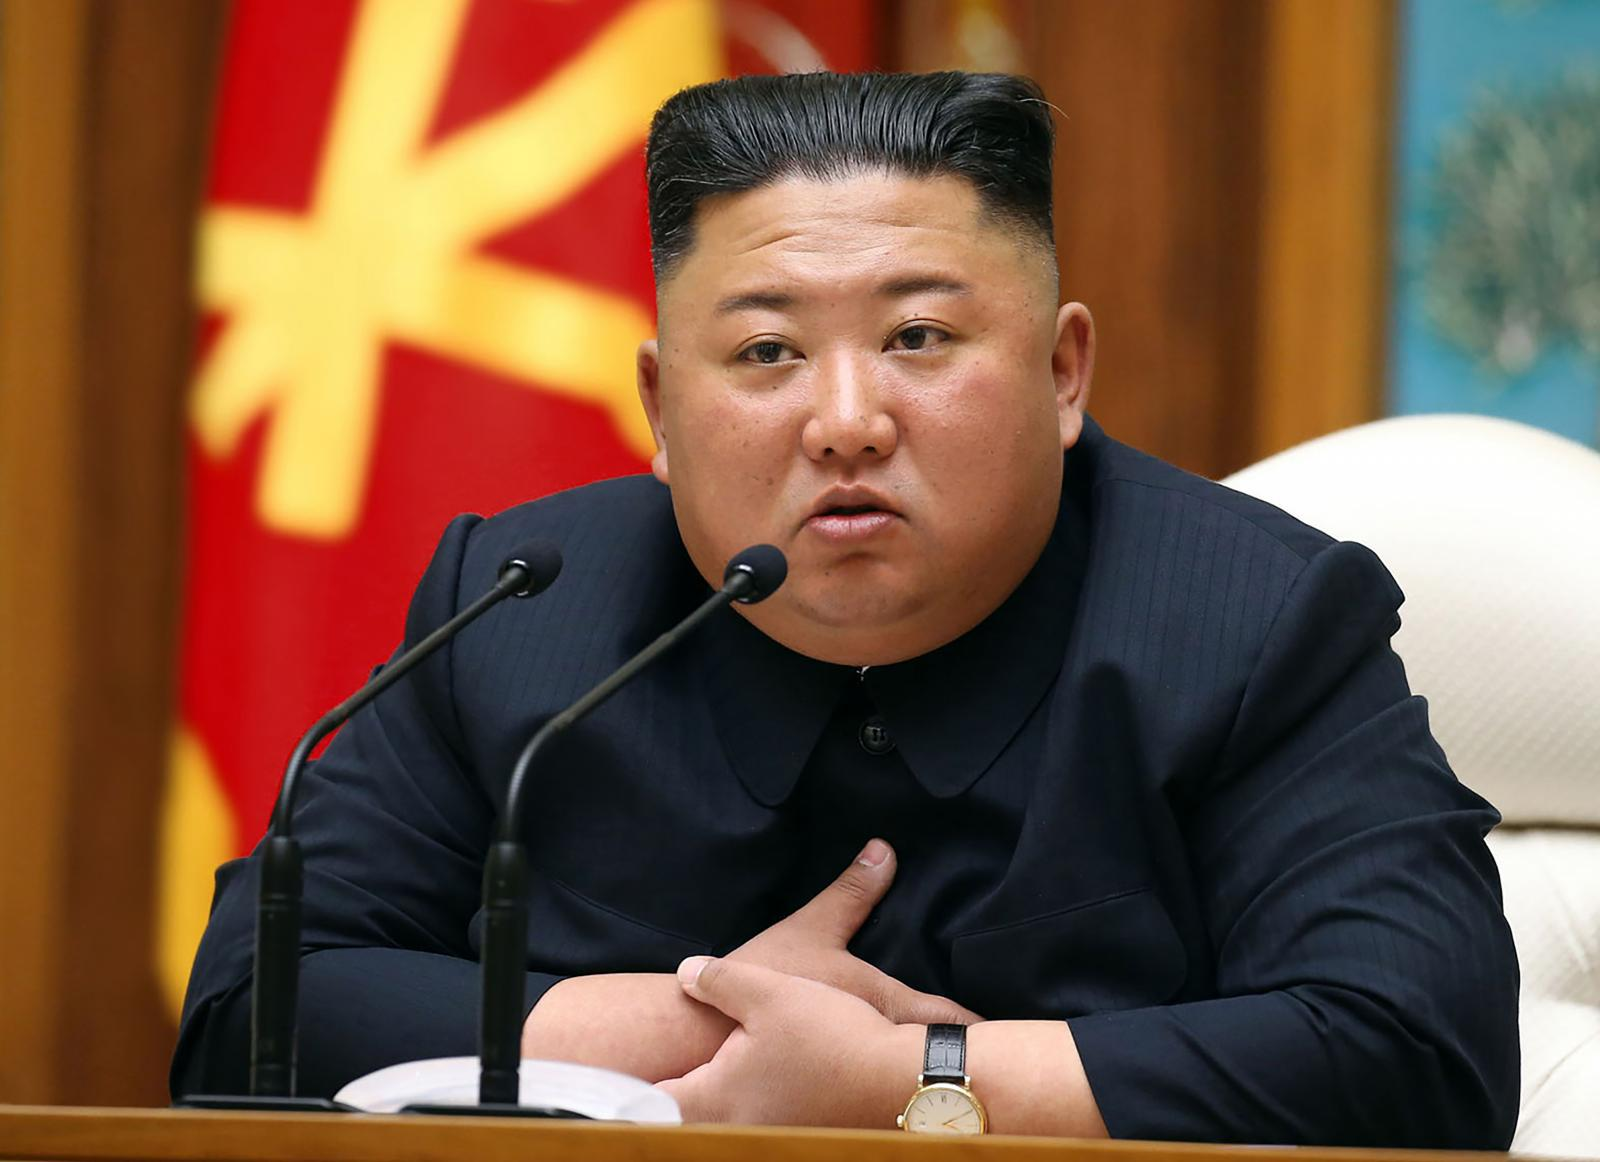 Kim Jong Un is the second-most famous person in the world in 2020, see why